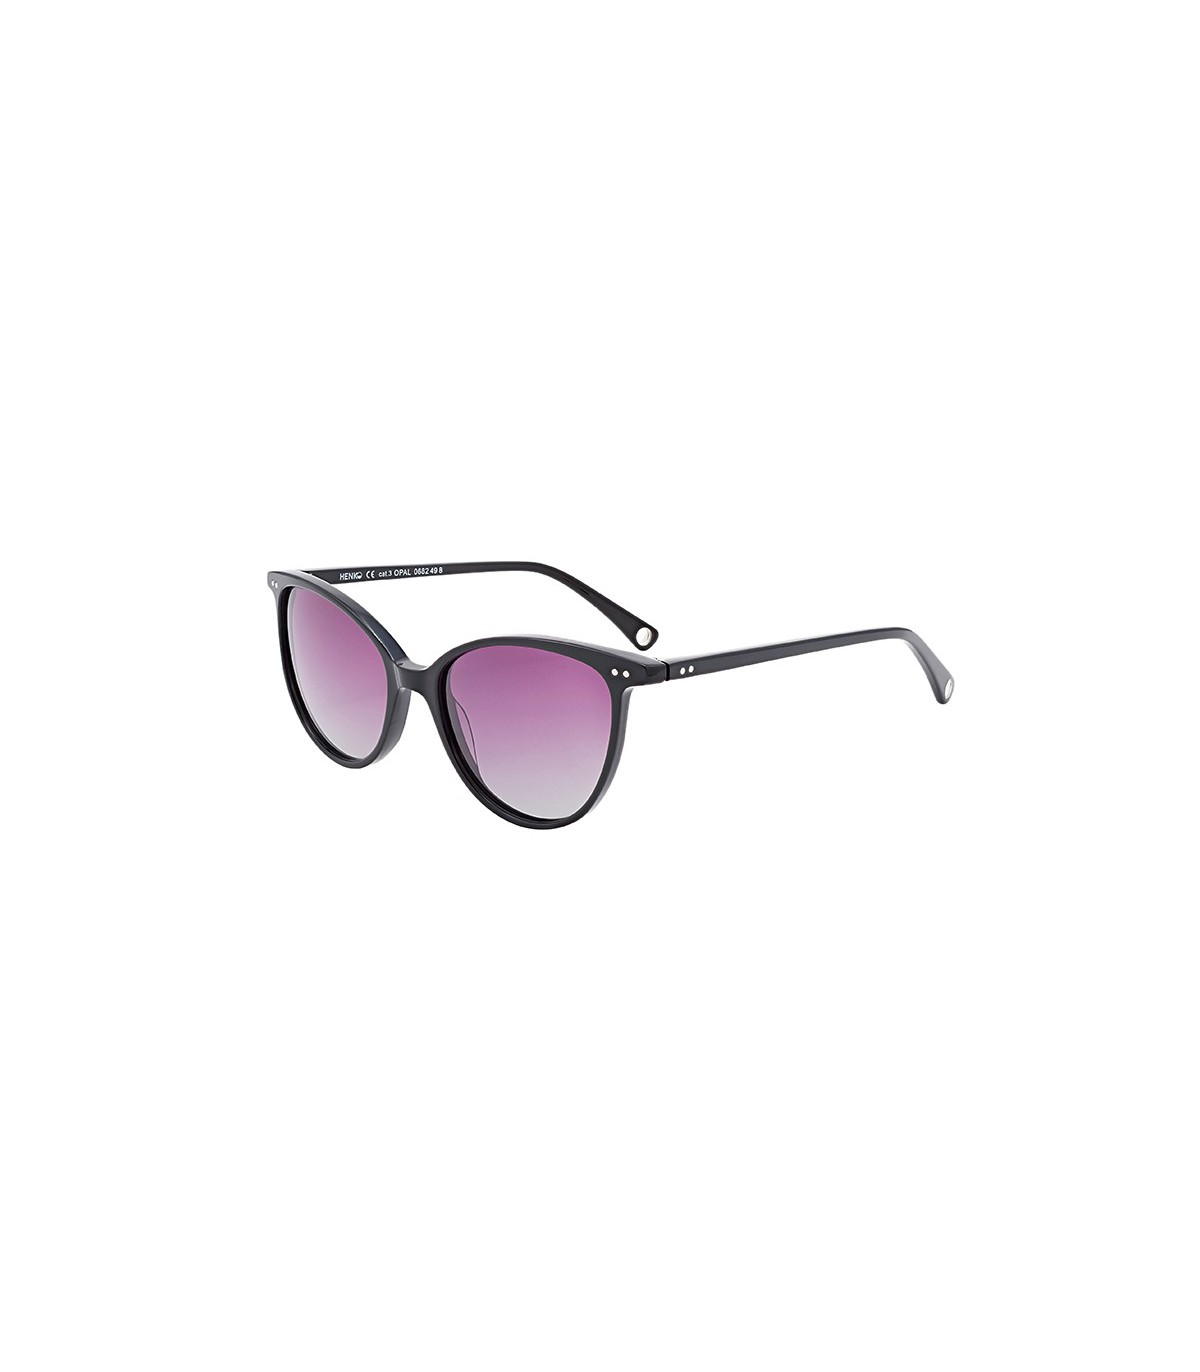 Henko Sunglasses (prescription optional) POAS142